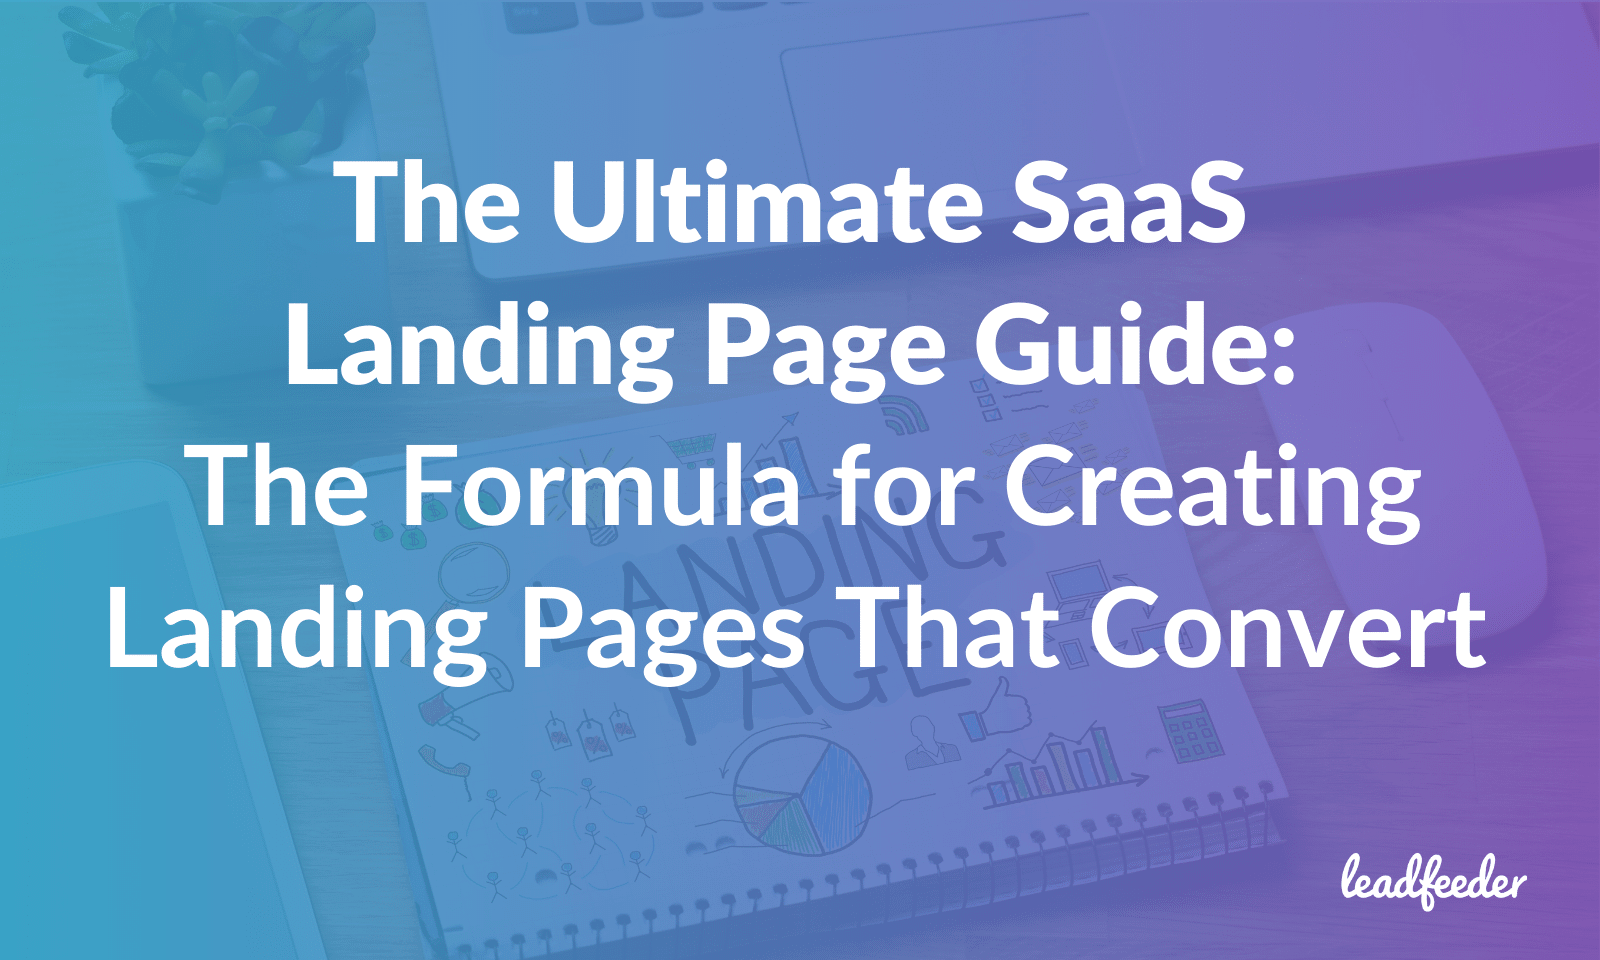 saas landing page guide